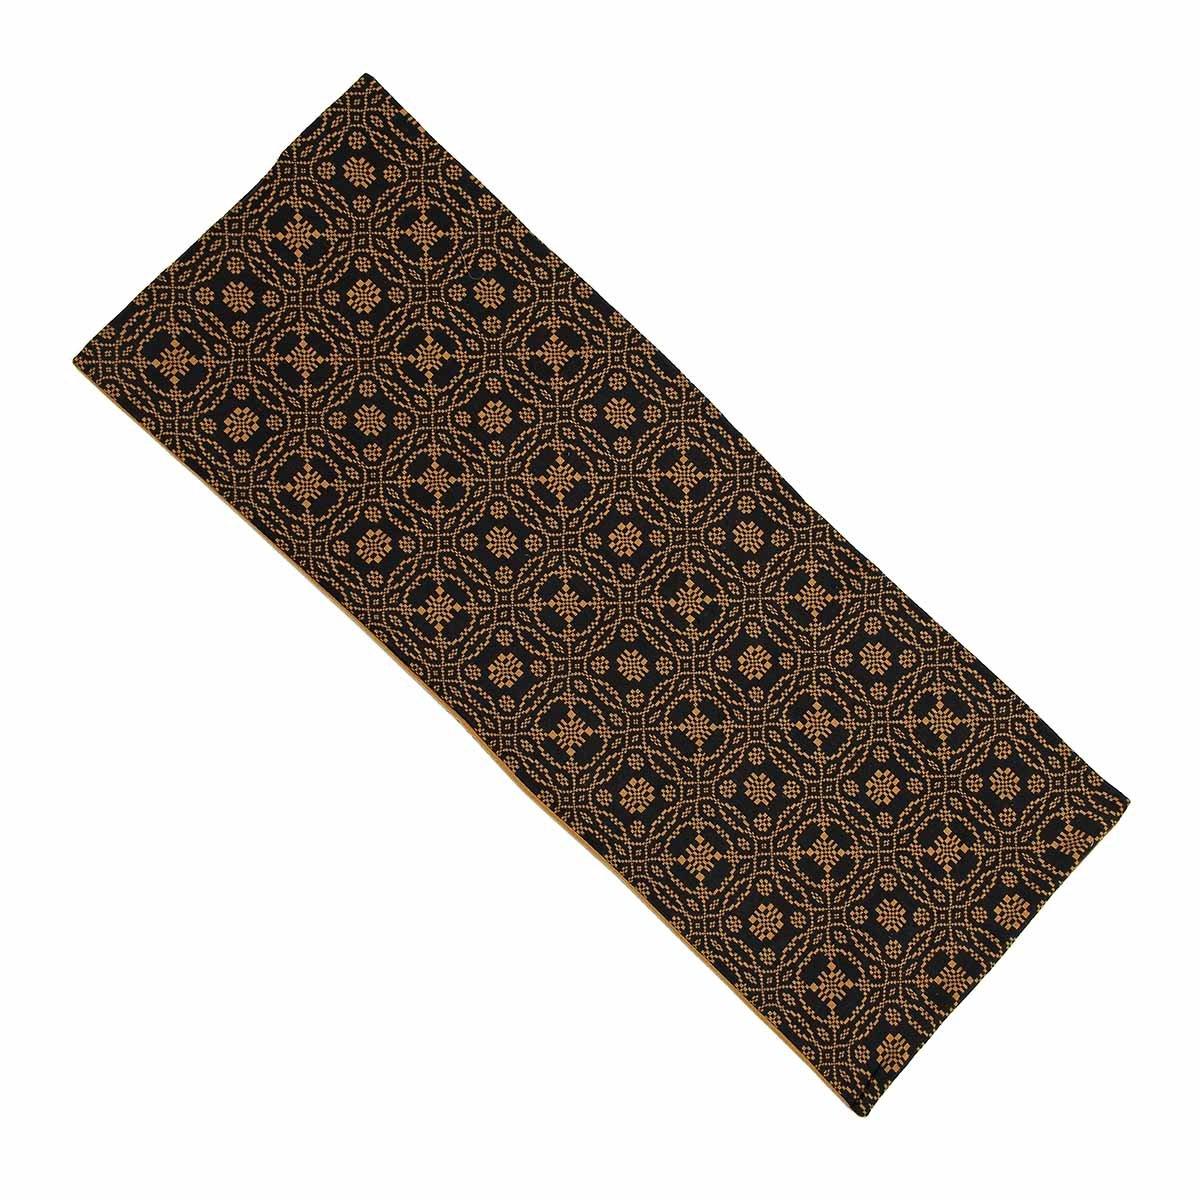 Home Collection by Raghu Lover's Knot Jacquard Black and Mustard Table Runner, 14 by 36''